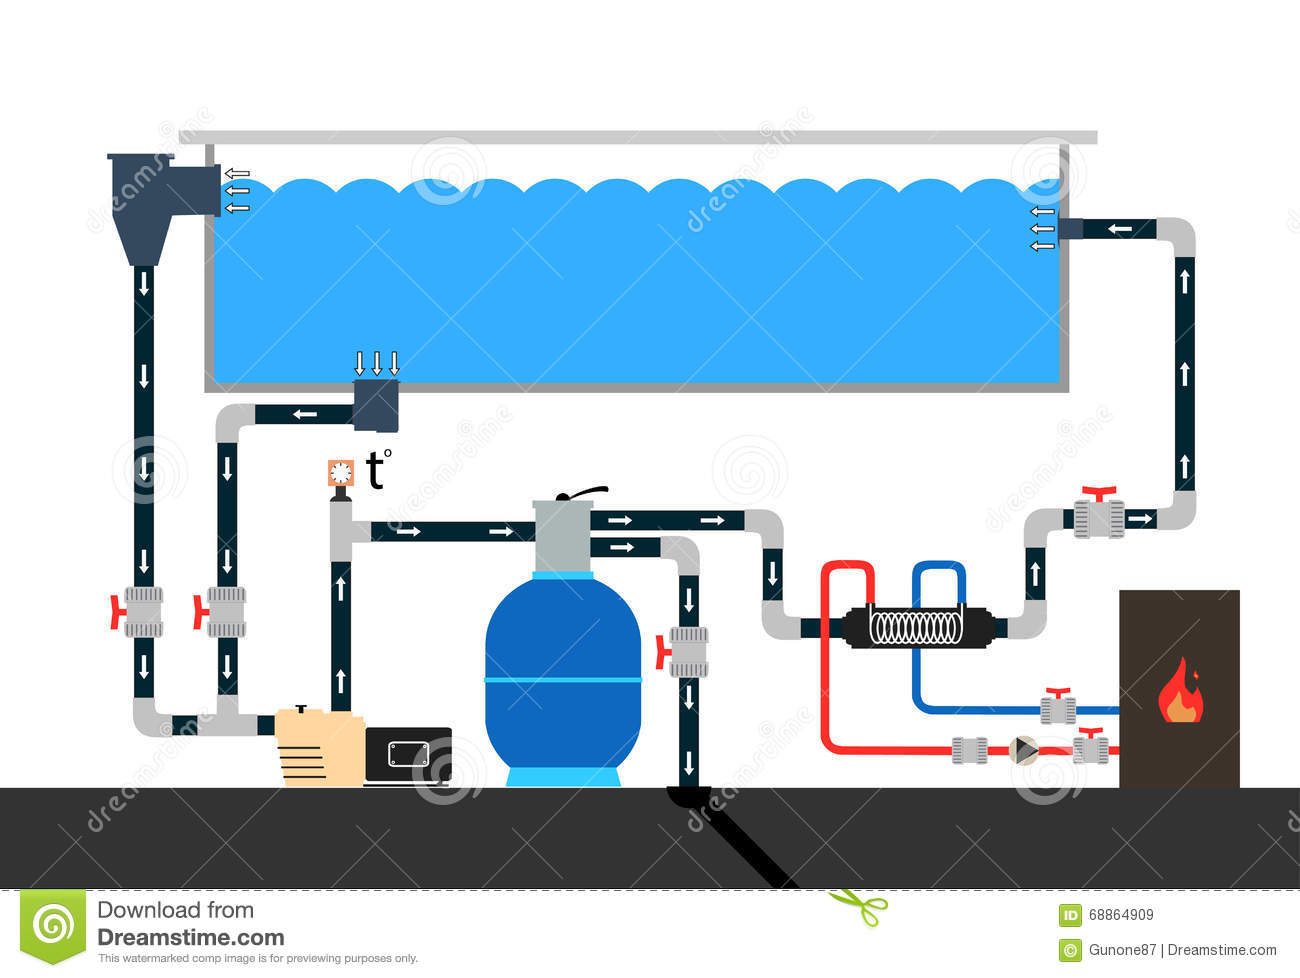 Swimming Pool Schematic